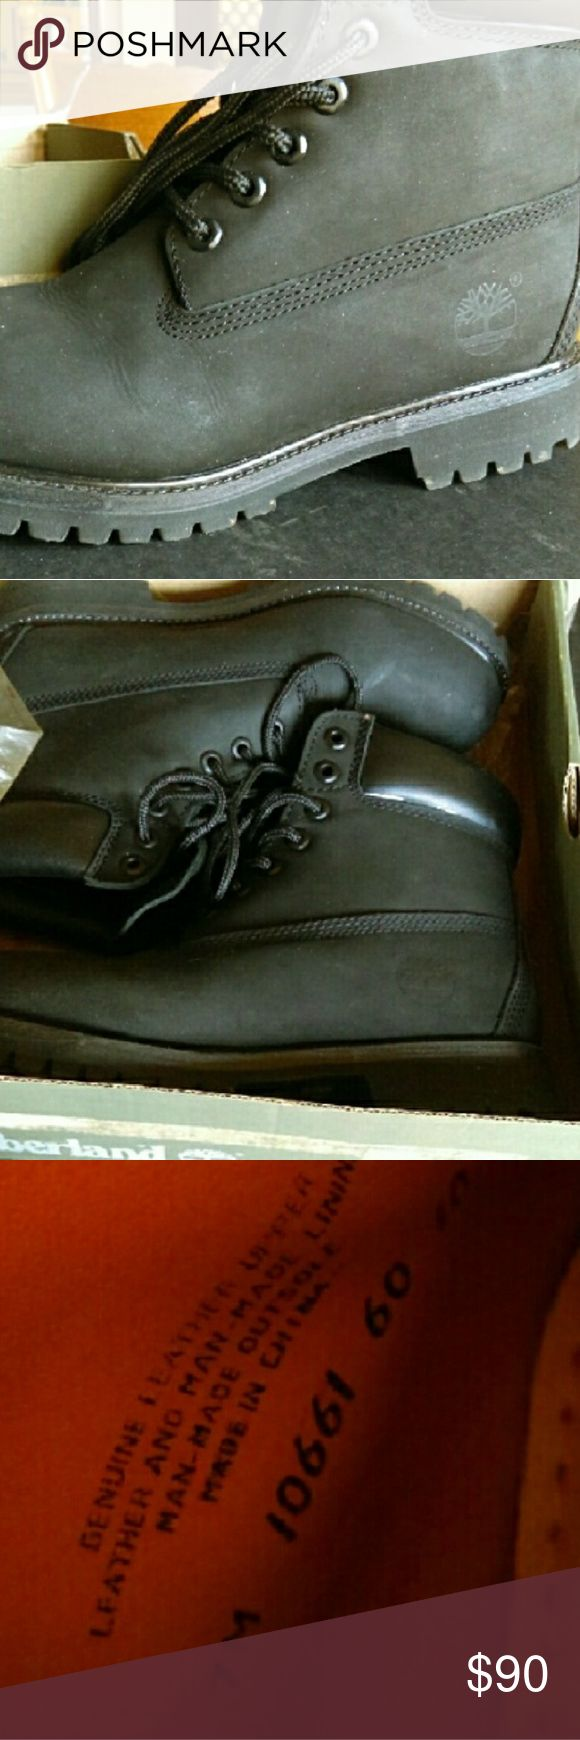 Black timberland boots Black timberland boots, size 7m. Fit size 8.5 women. Will clean before shipping Timberland Shoes Combat & Moto Boots